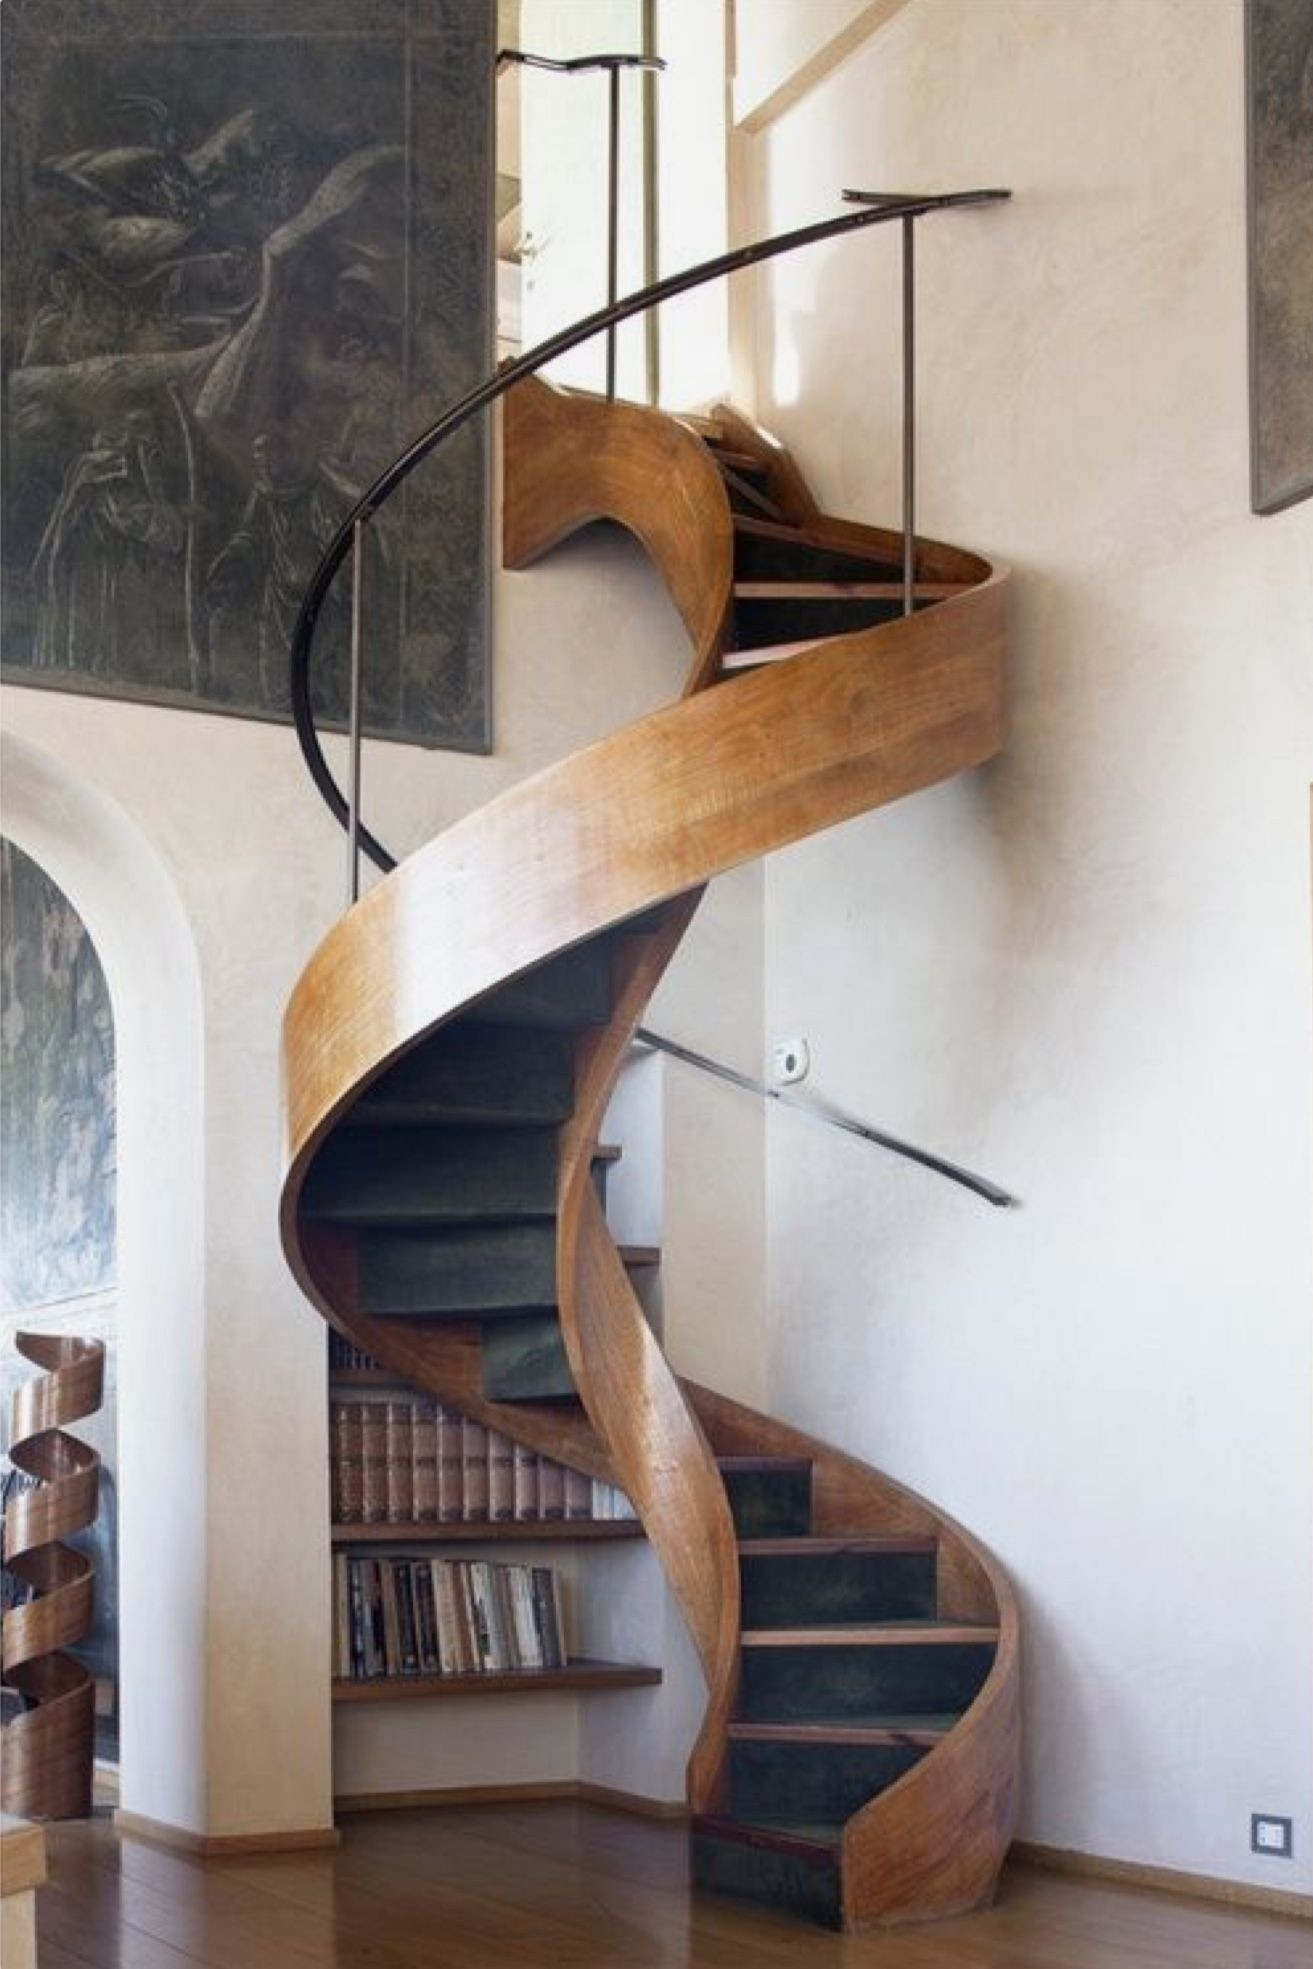 Loft With Stairs For 2020 Ideas On Foter | Space Saving Stairs Design | Storage | Small Space | Cute | Low Cost | 2Nd Floor Small Terrace Concrete